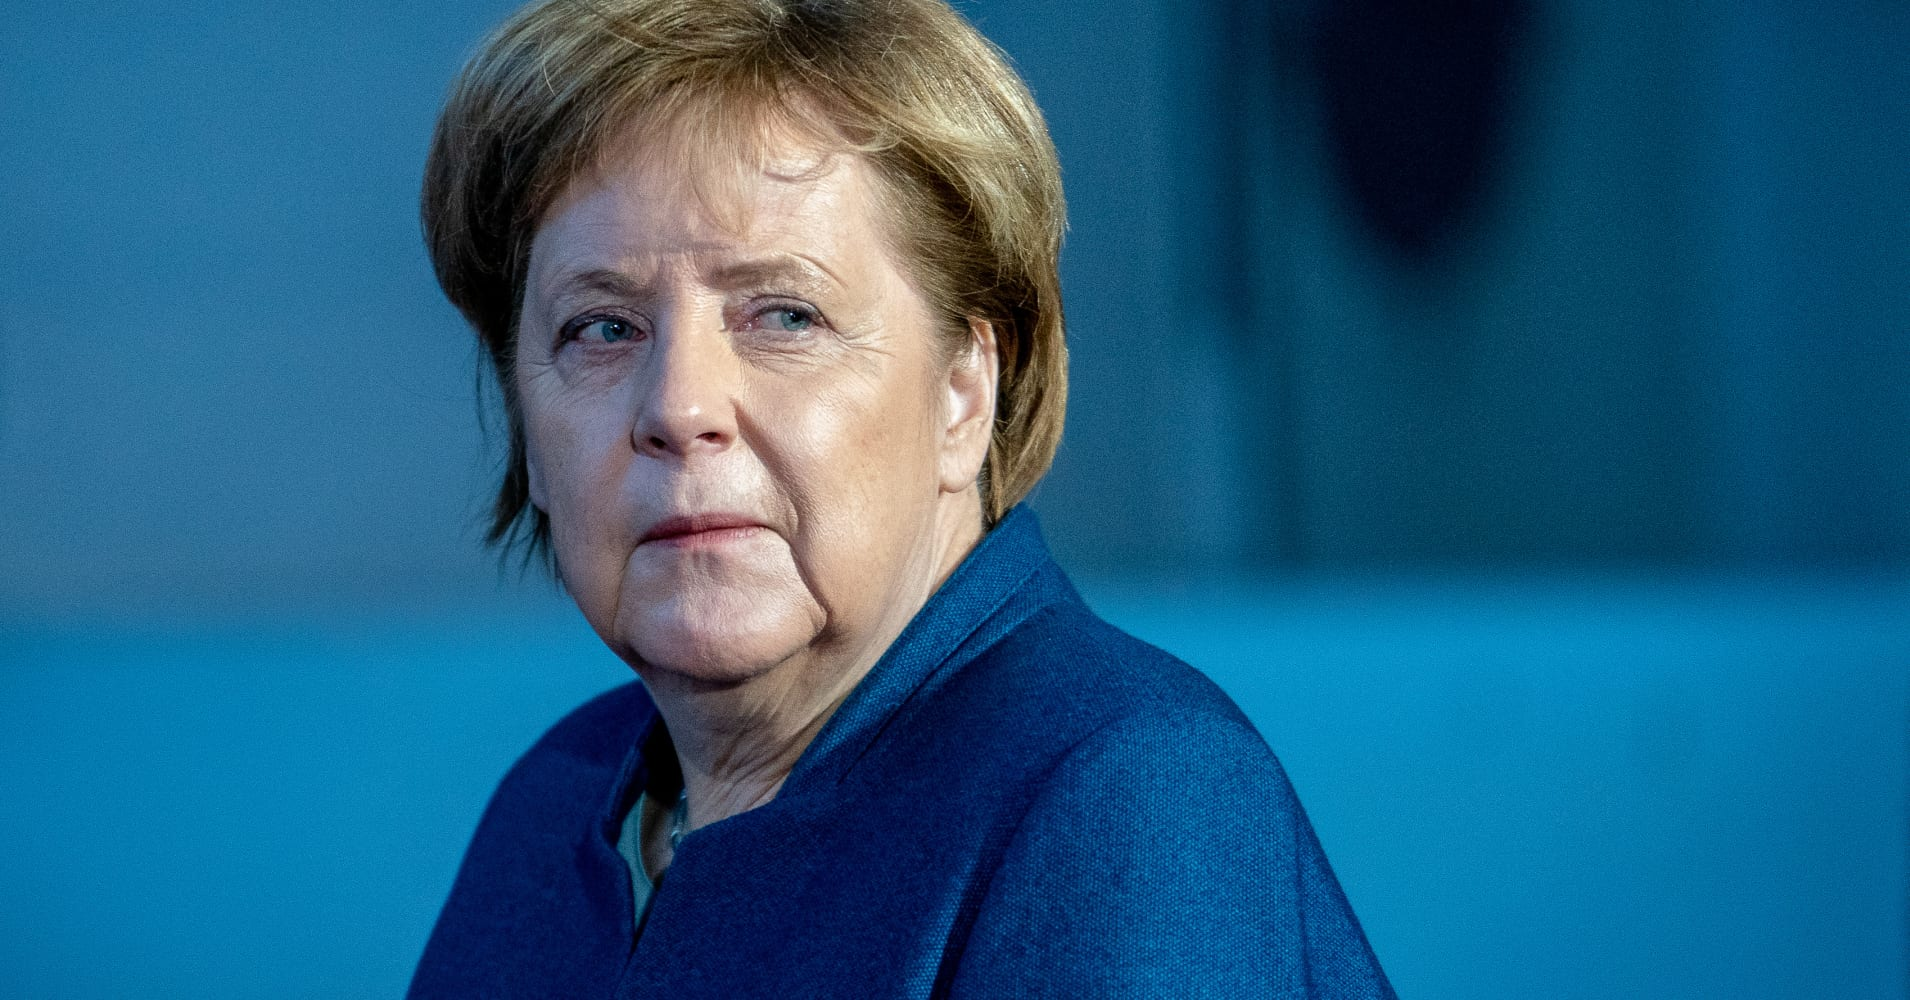 Germany's Merkel to miss G20 opening after aircraft troubles